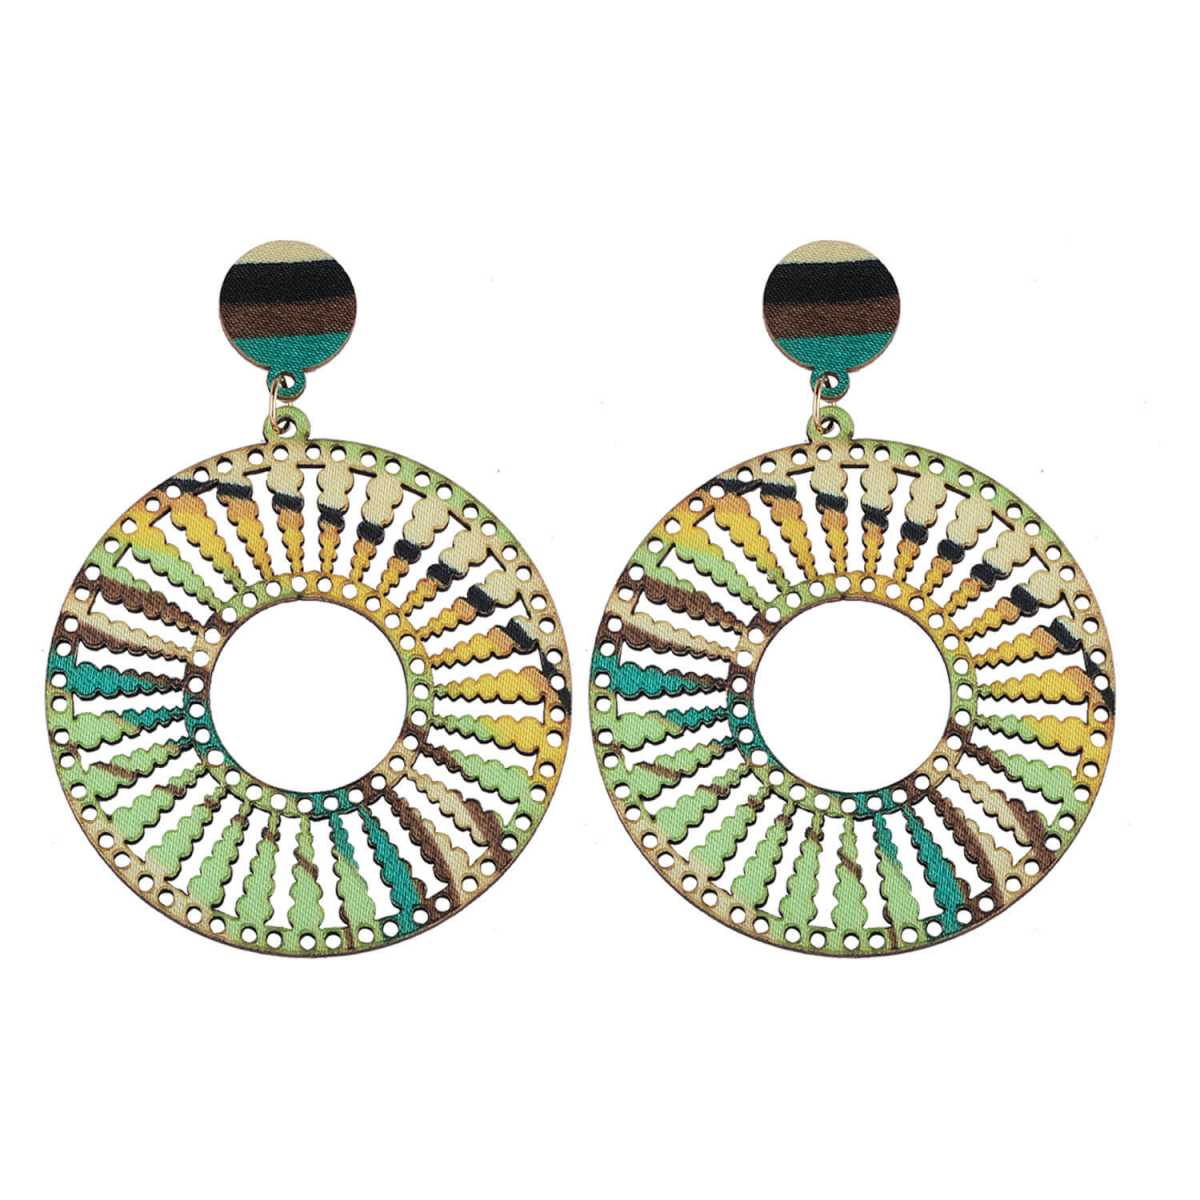 SILVER SHINE Exclusive Wooden Earrings Round Dangler Light Weight for Girls and Women.